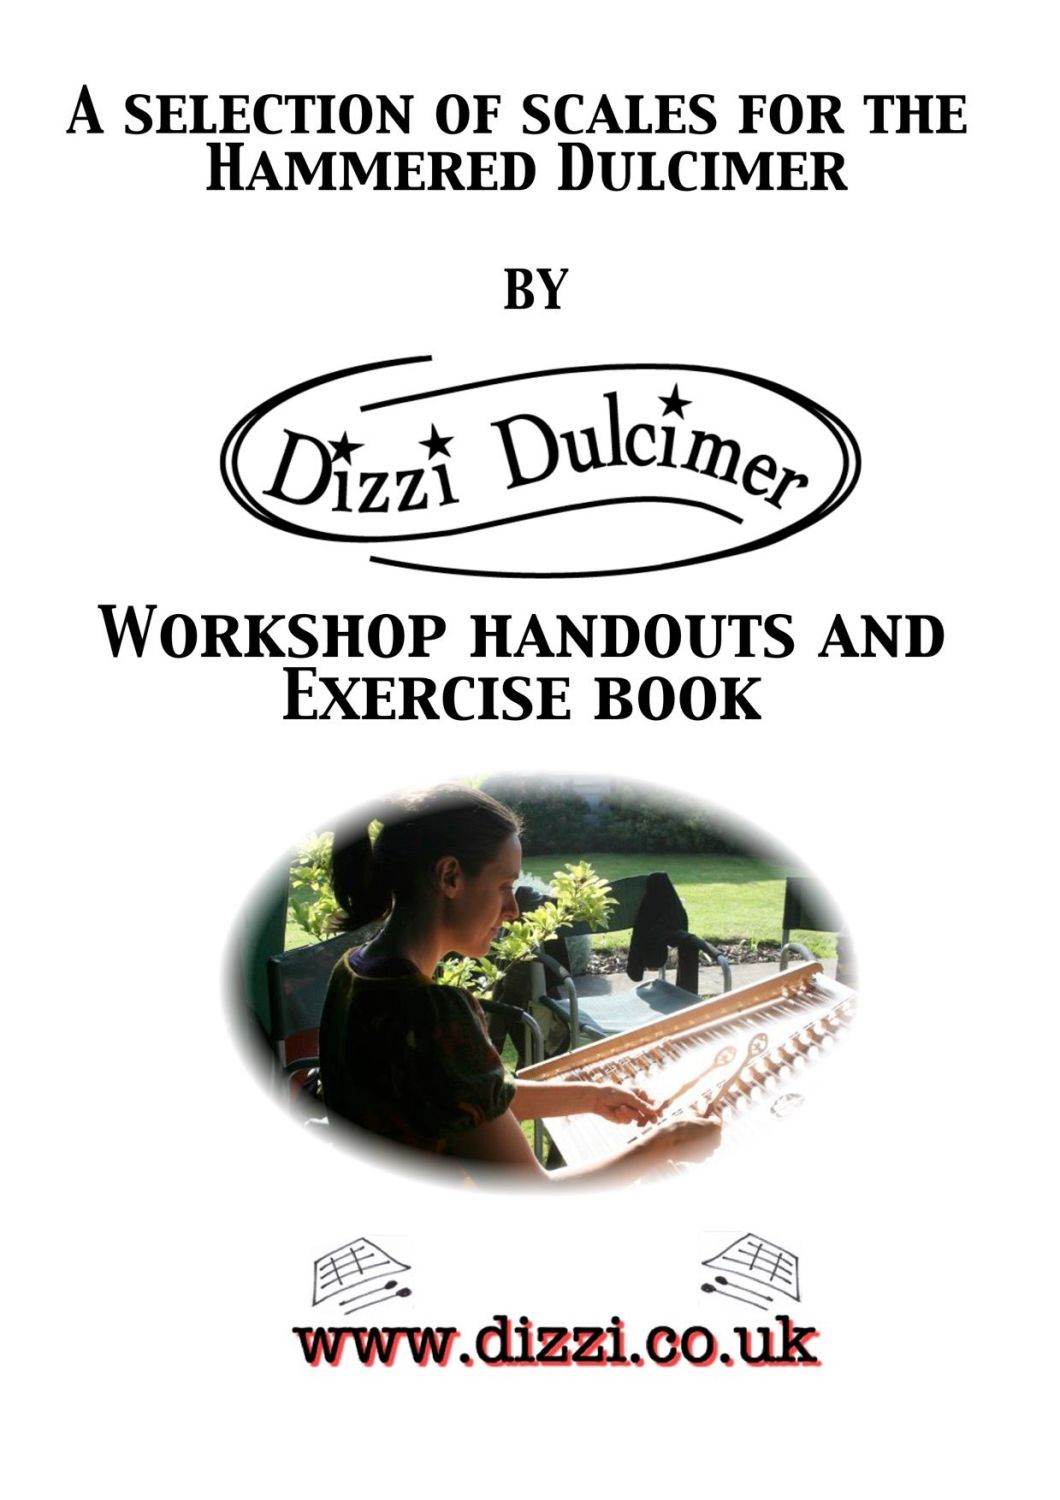 Discover the Dulcimer the Dizzi way